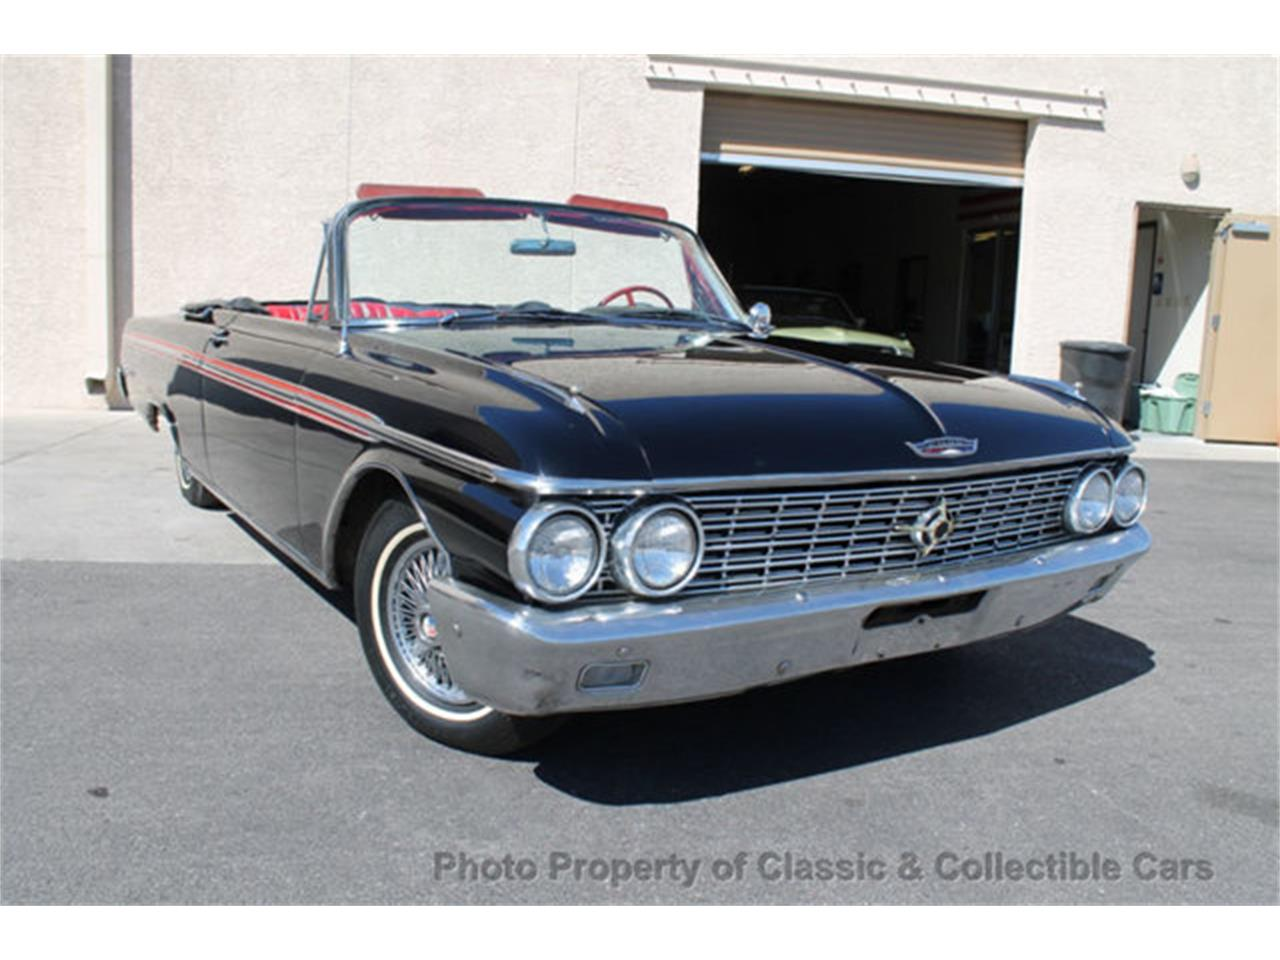 For Sale: 1962 Ford Galaxie 500 in Las Vegas, Nevada